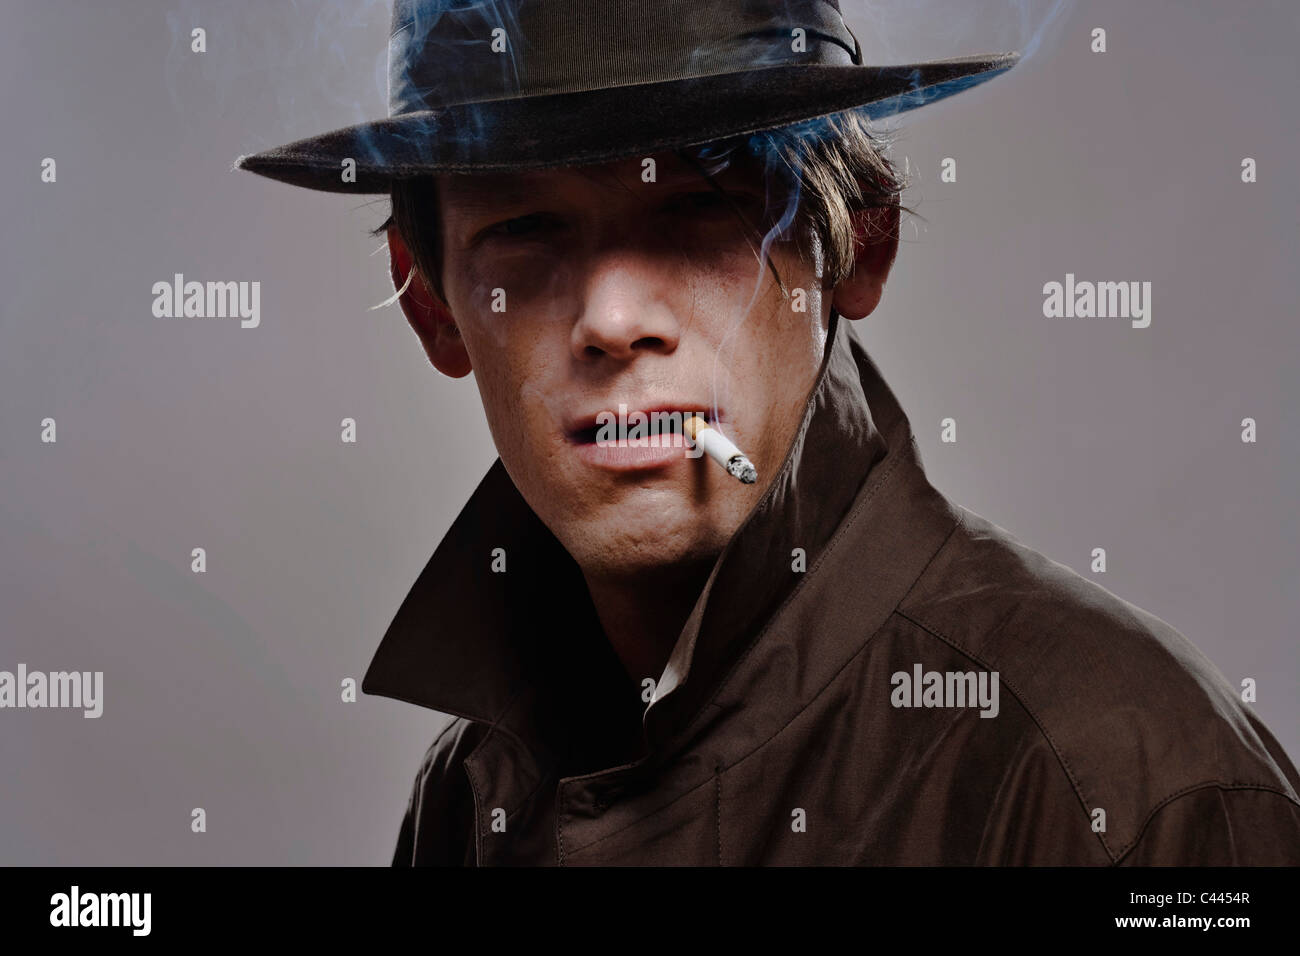 Portrait of a man wearing a hat and trench coat while smoking - Stock Image